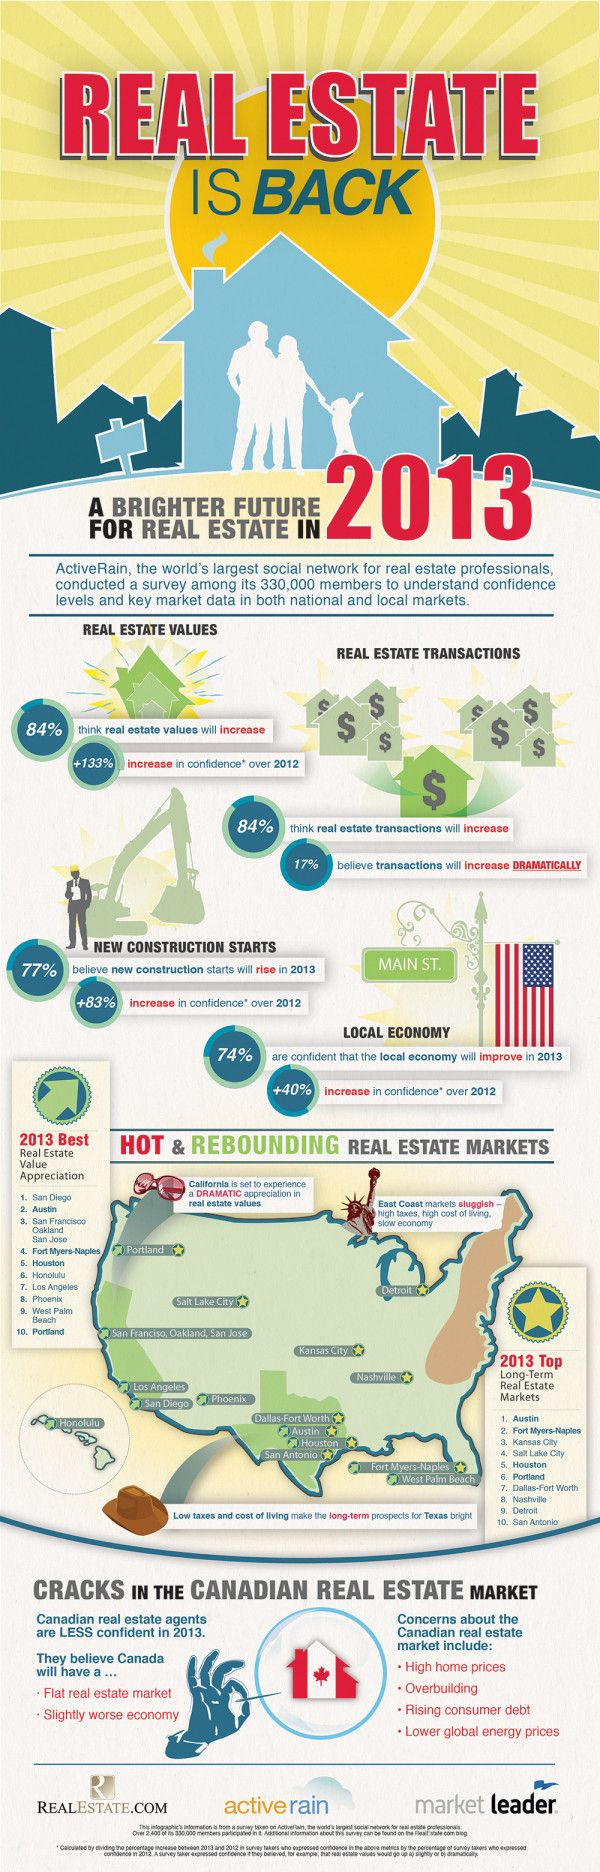 Real estate is back! [infographic] Heck Yes! I picked a good time to get back into Real Estate in San Diego!